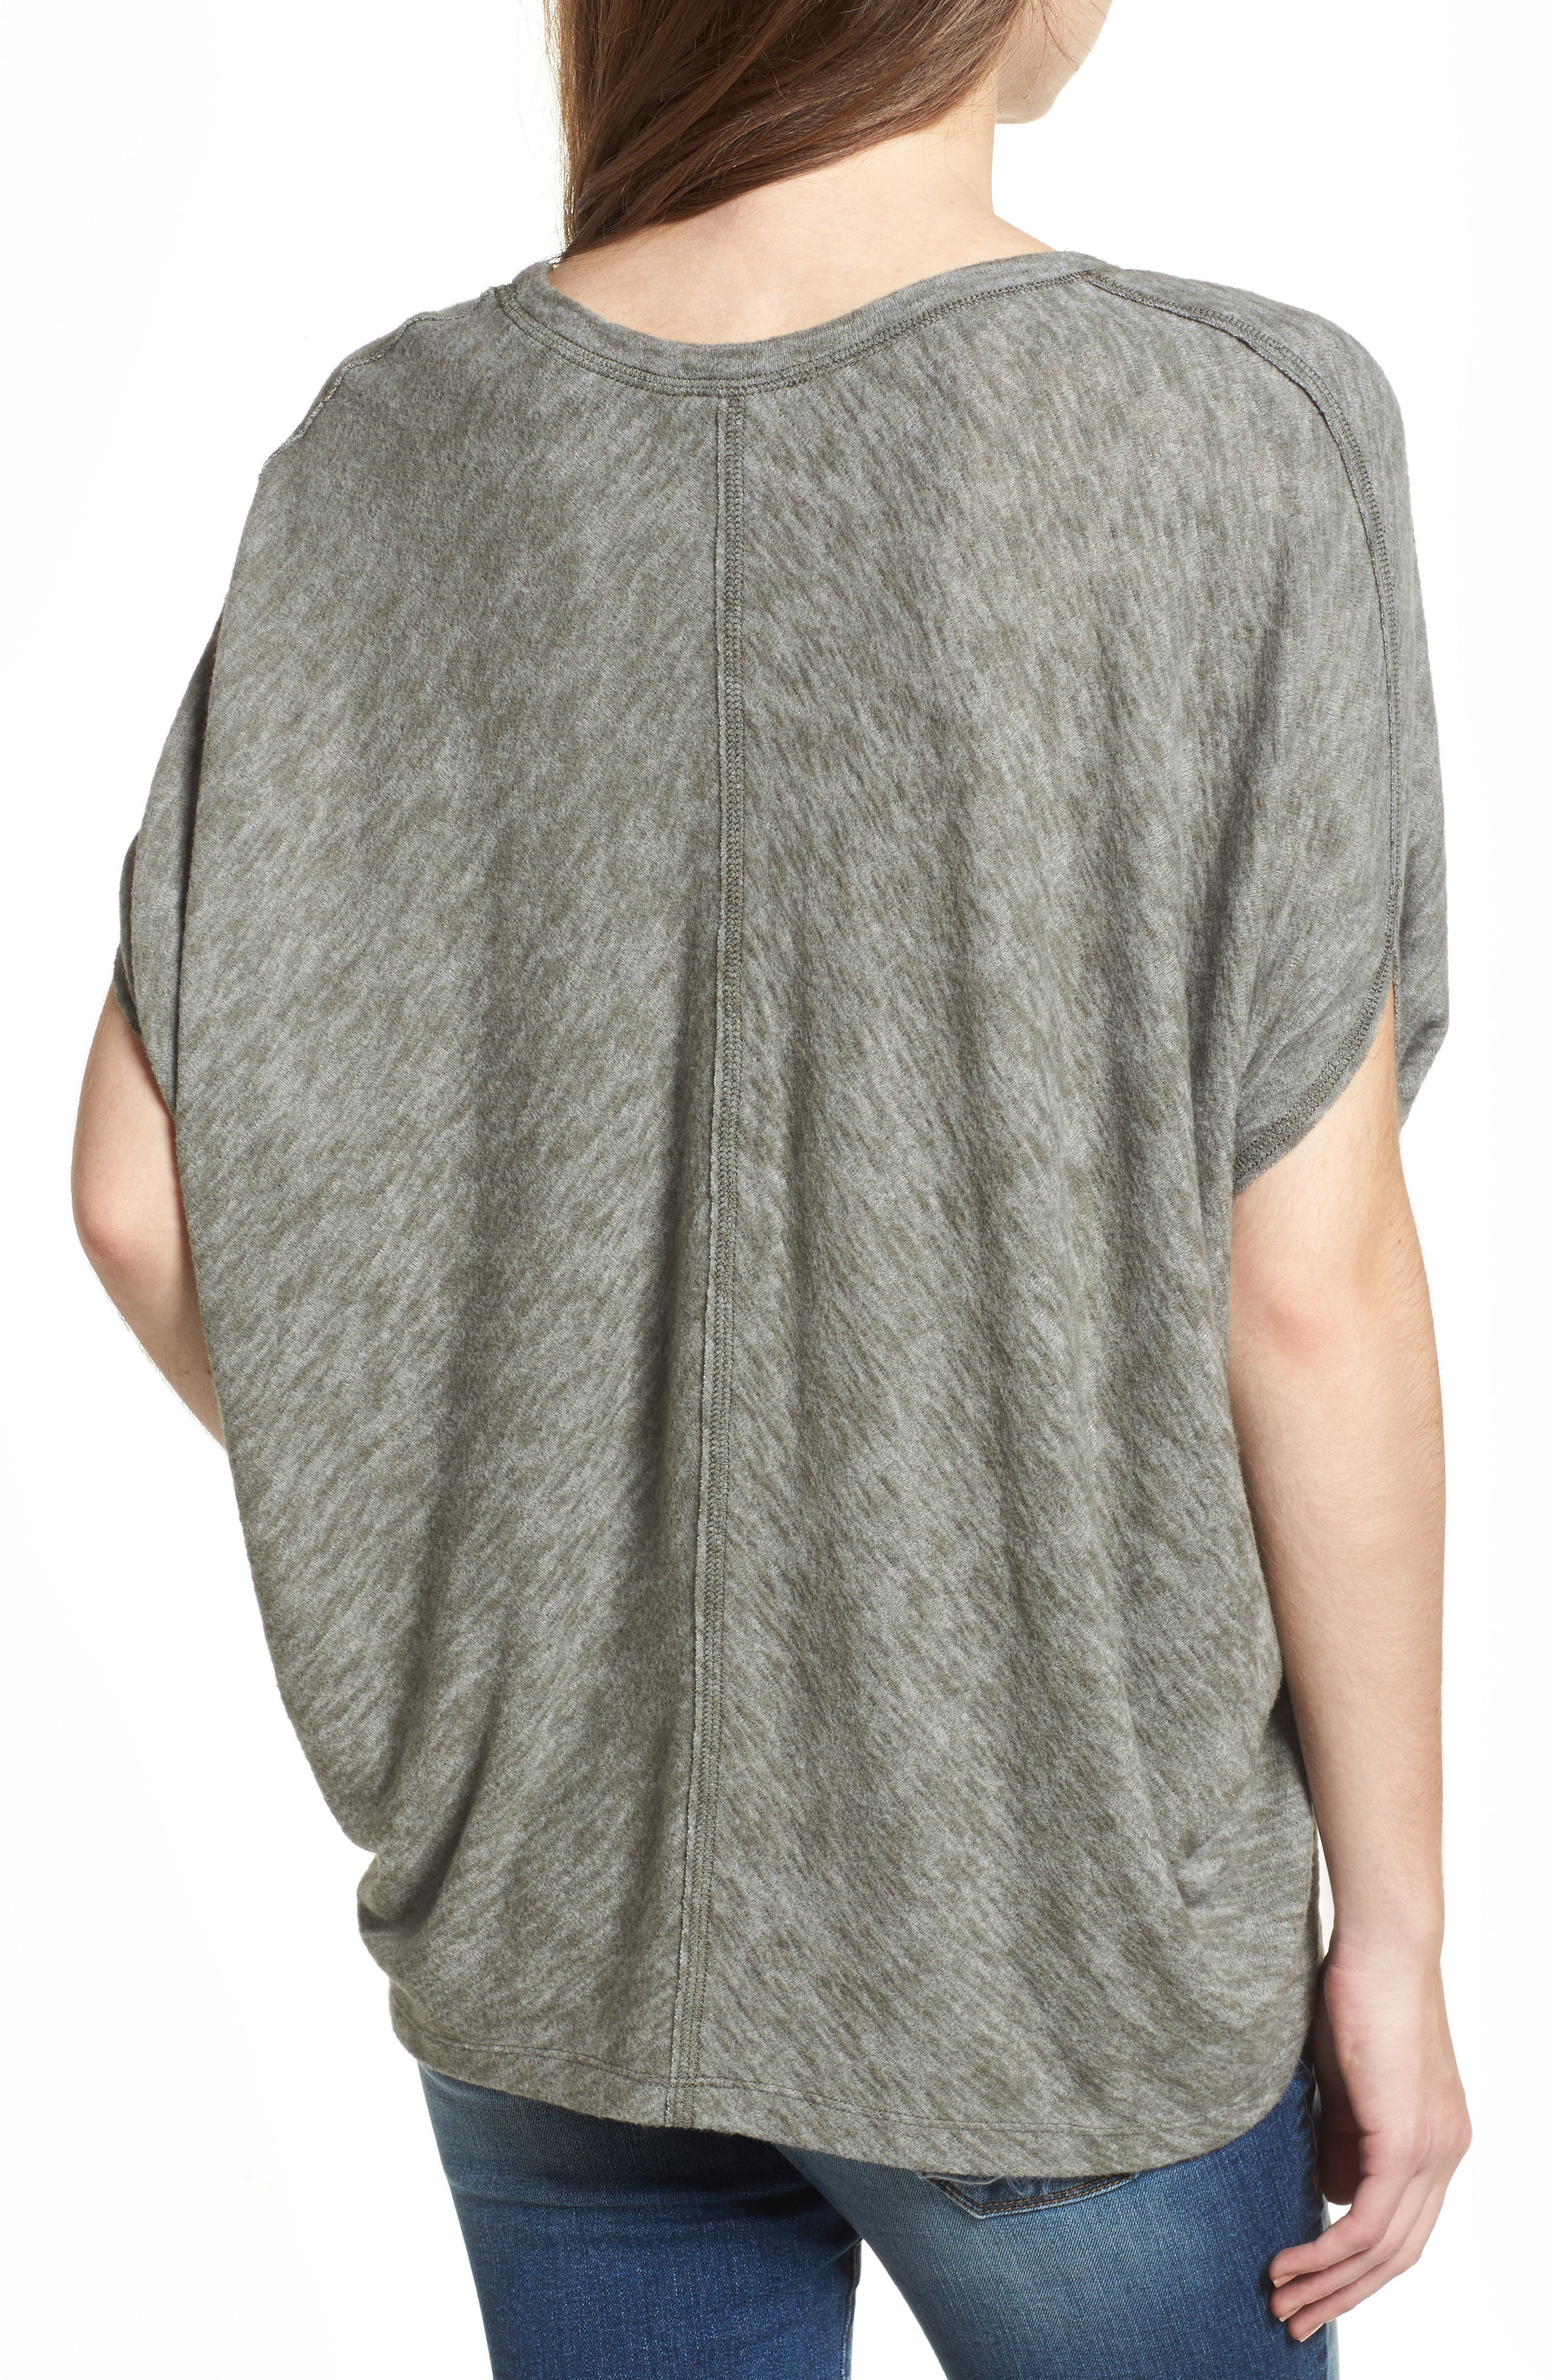 Cocoon Top,                             Alternate thumbnail 2, color,                             Olive Green